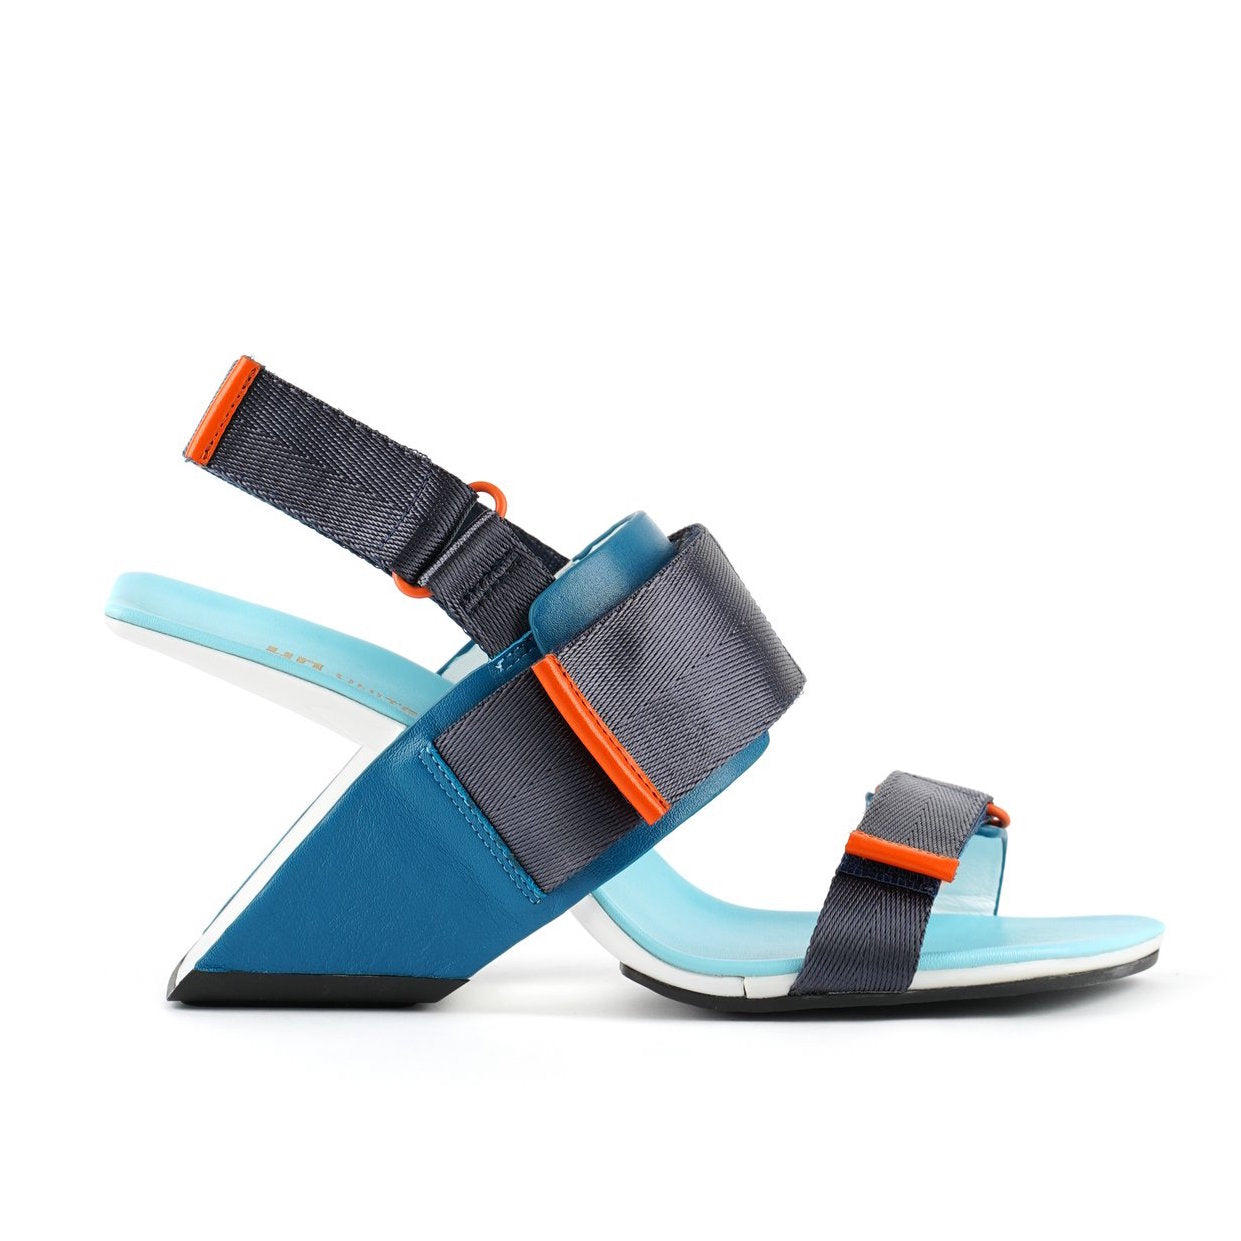 Outer view of the united nude loop run high heel sandal. This sandal is blue with a black back strap, a black strap over the instep, and a black strap over the toes.